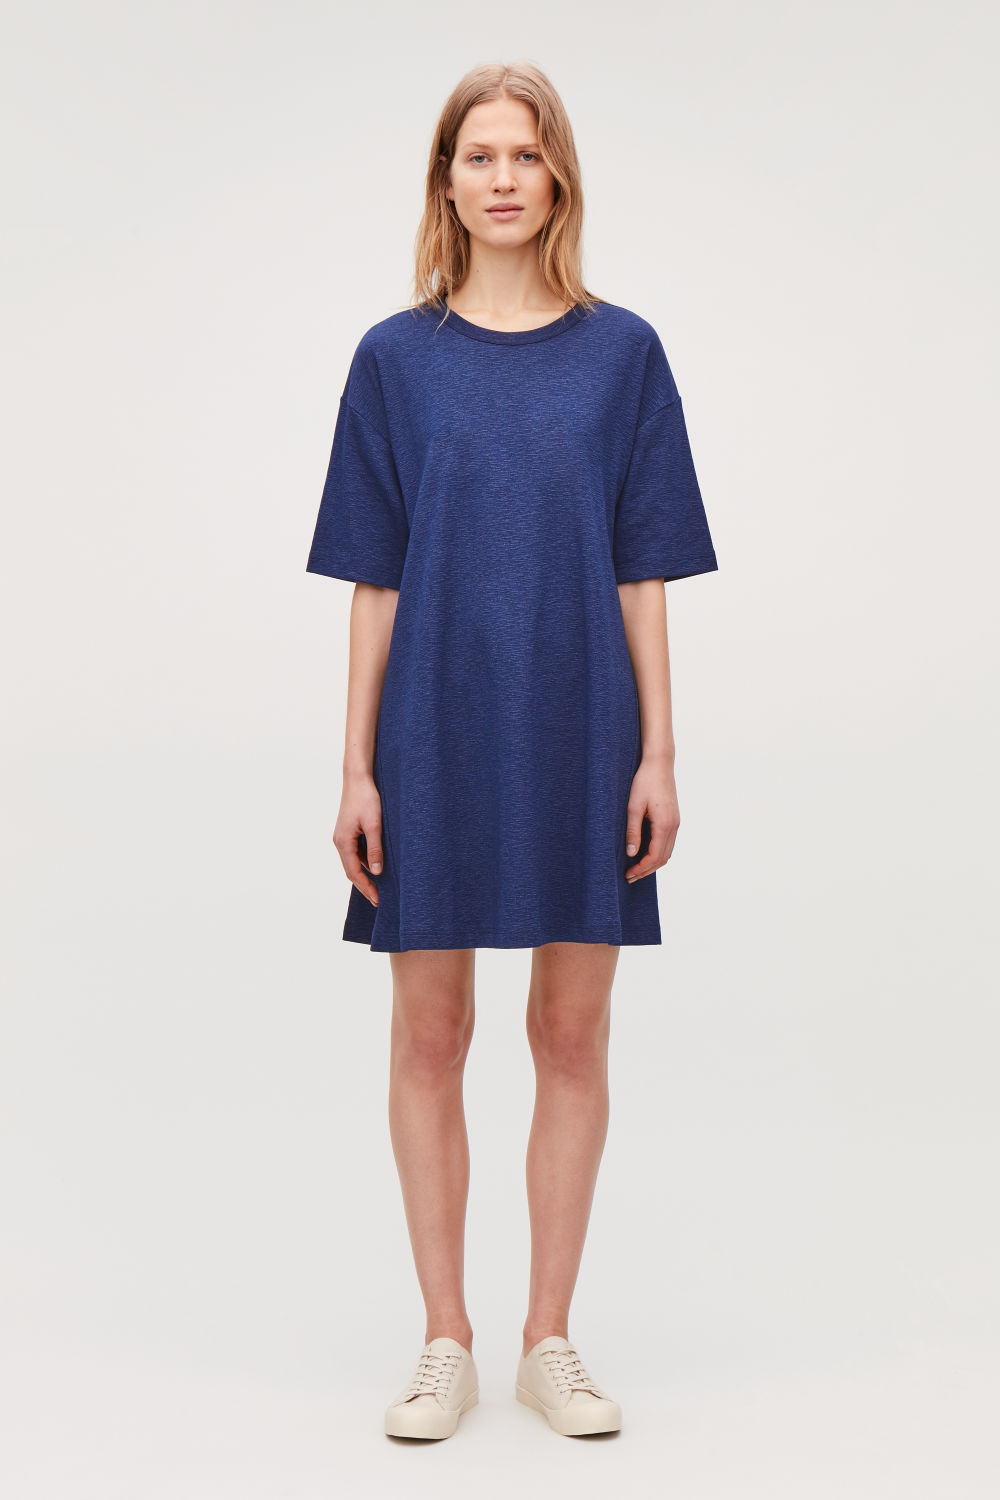 CASUAL JERSEY A-LINE DRESS